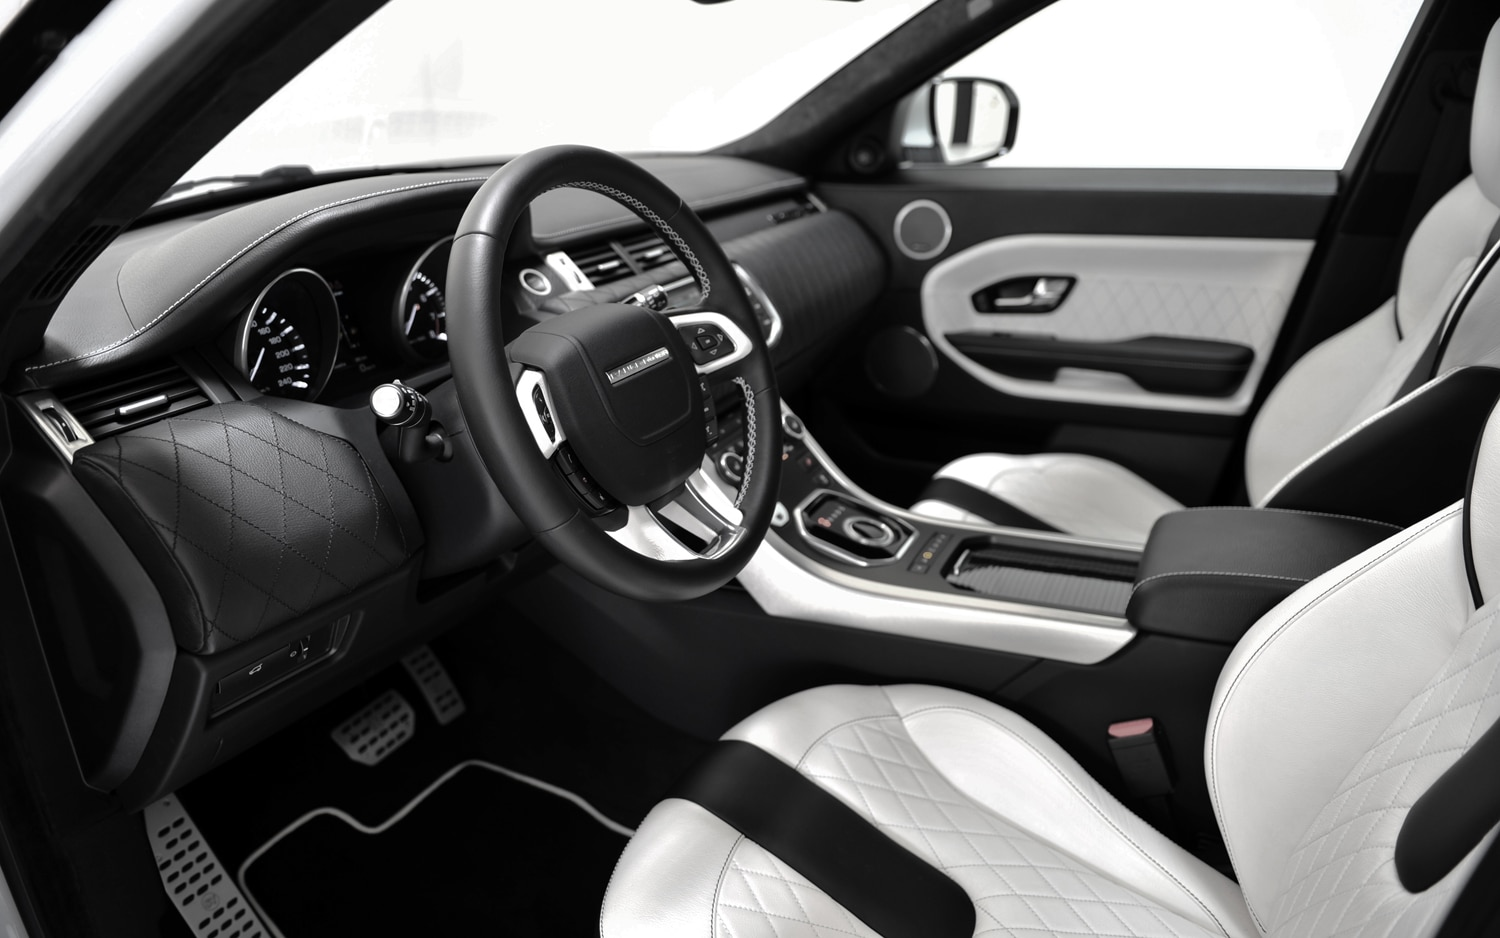 brabus subdivision startech prepares styling kit for range rover evoque. Black Bedroom Furniture Sets. Home Design Ideas